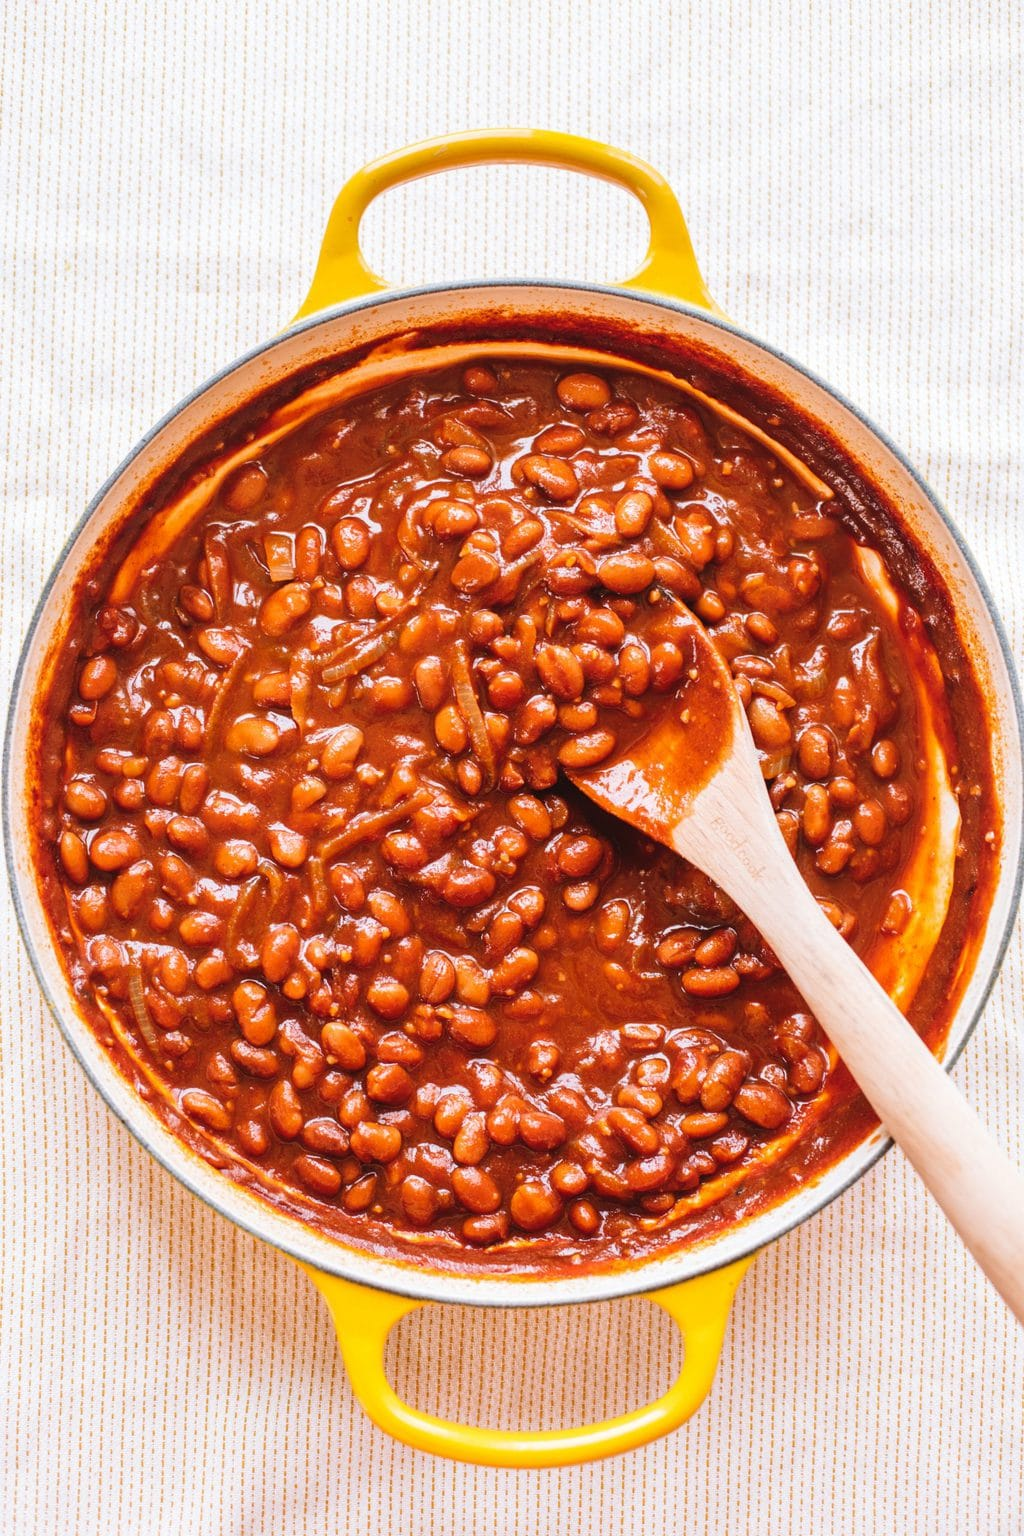 vegetarian baked beans in yellow dutch oven with wooden spoon